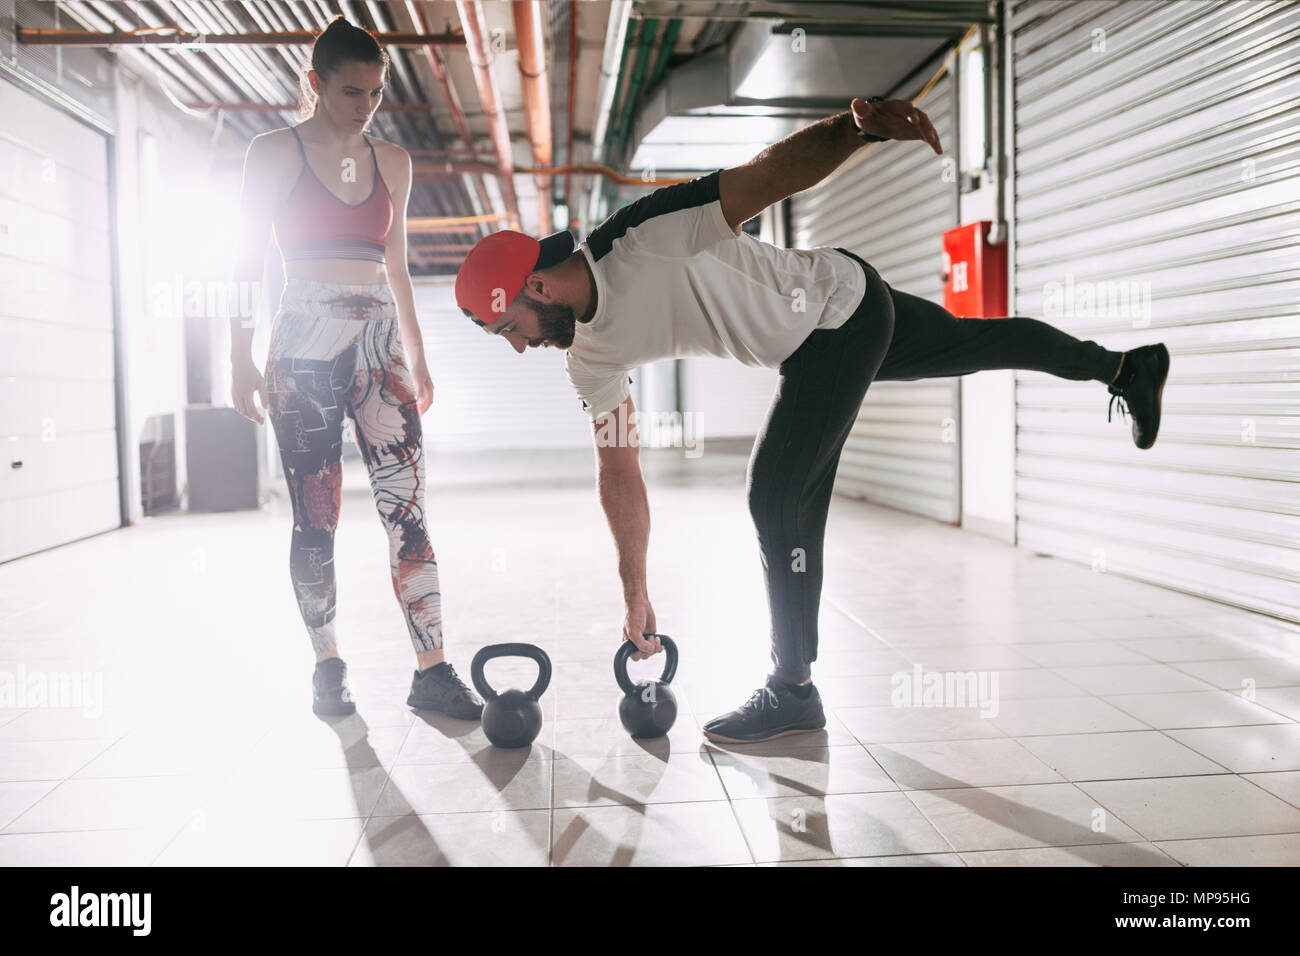 Young muscular woman doing strength exercise with kettlebell on a